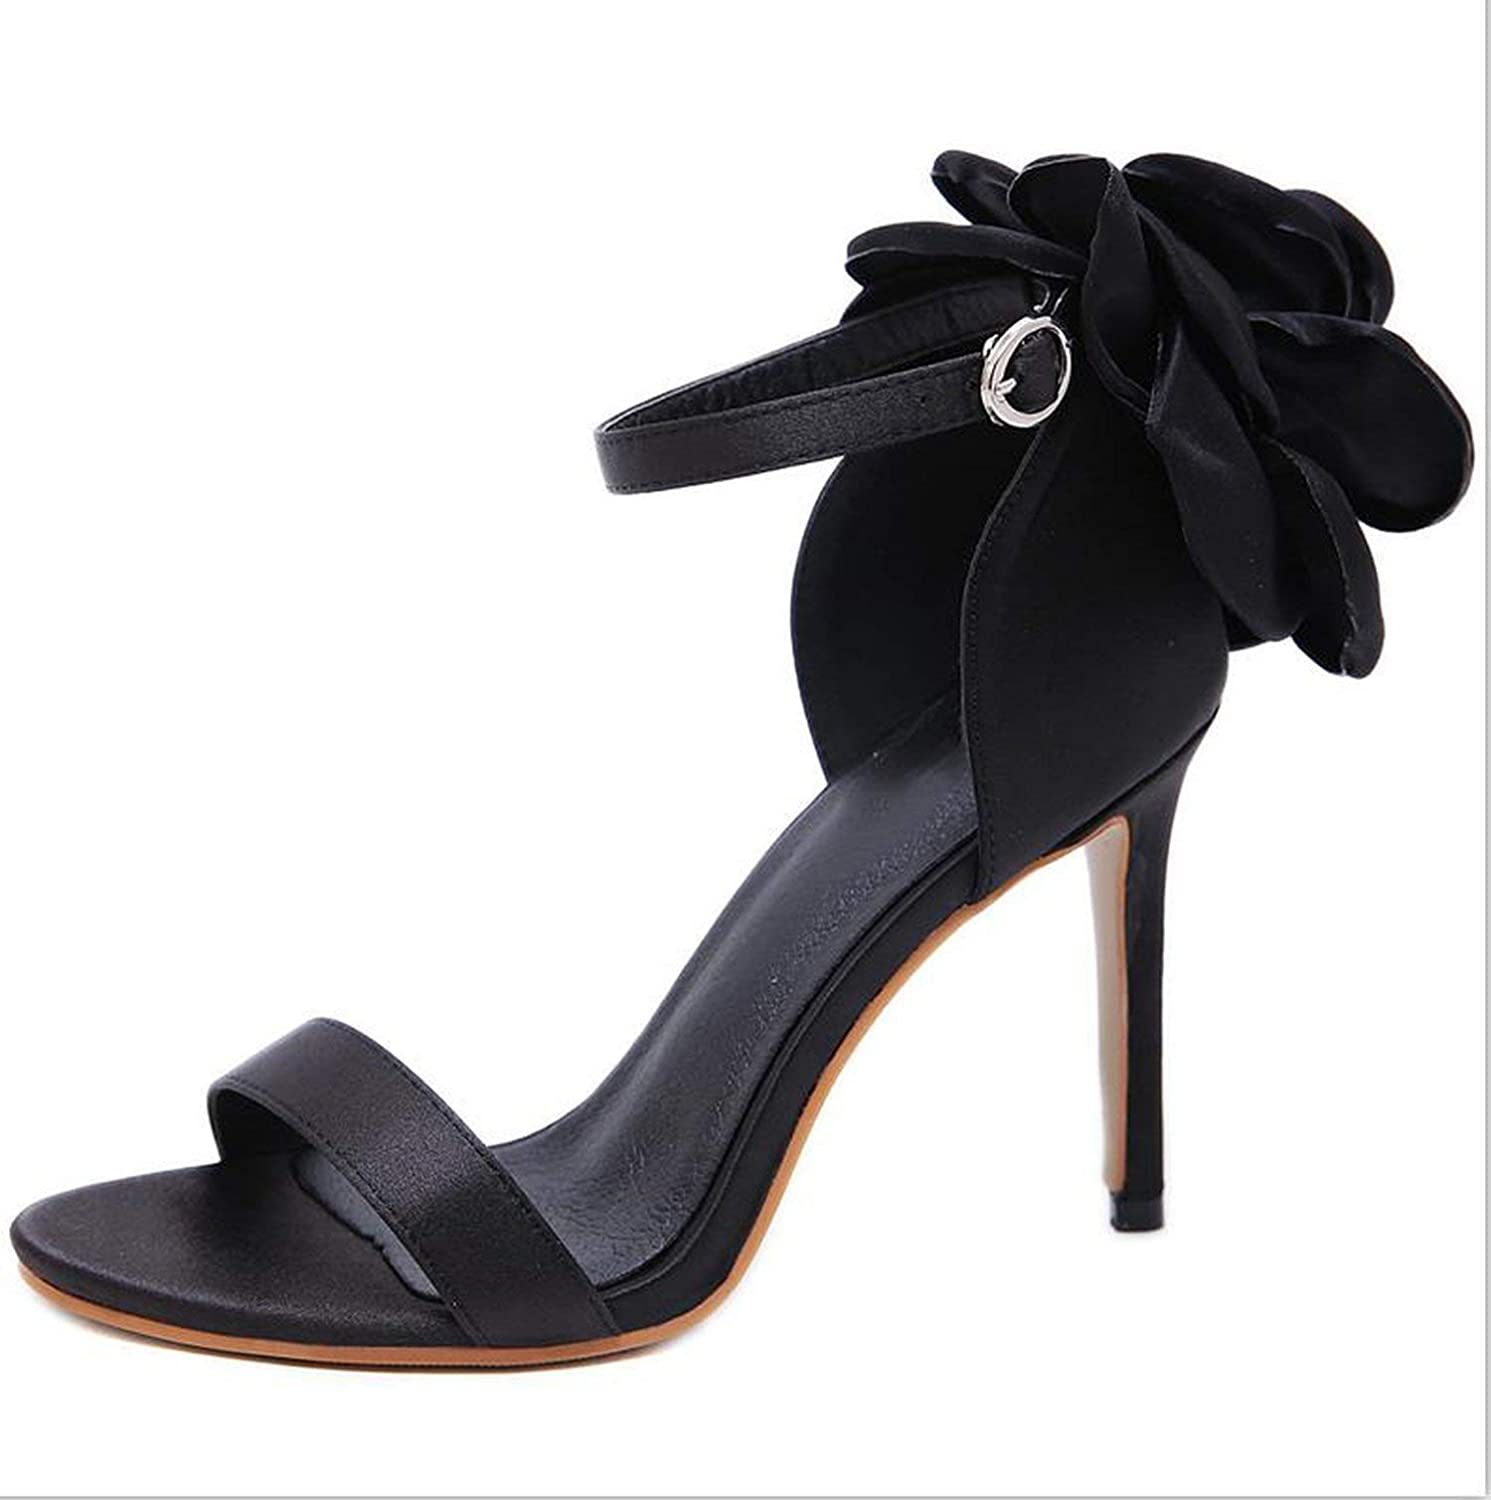 Our ideas Summer Big Butterfly-Knot Women Sandals Stiletto High Heel shoes Ankle Strap OL Sexy Pump Party Wedding shoes Size 35-40